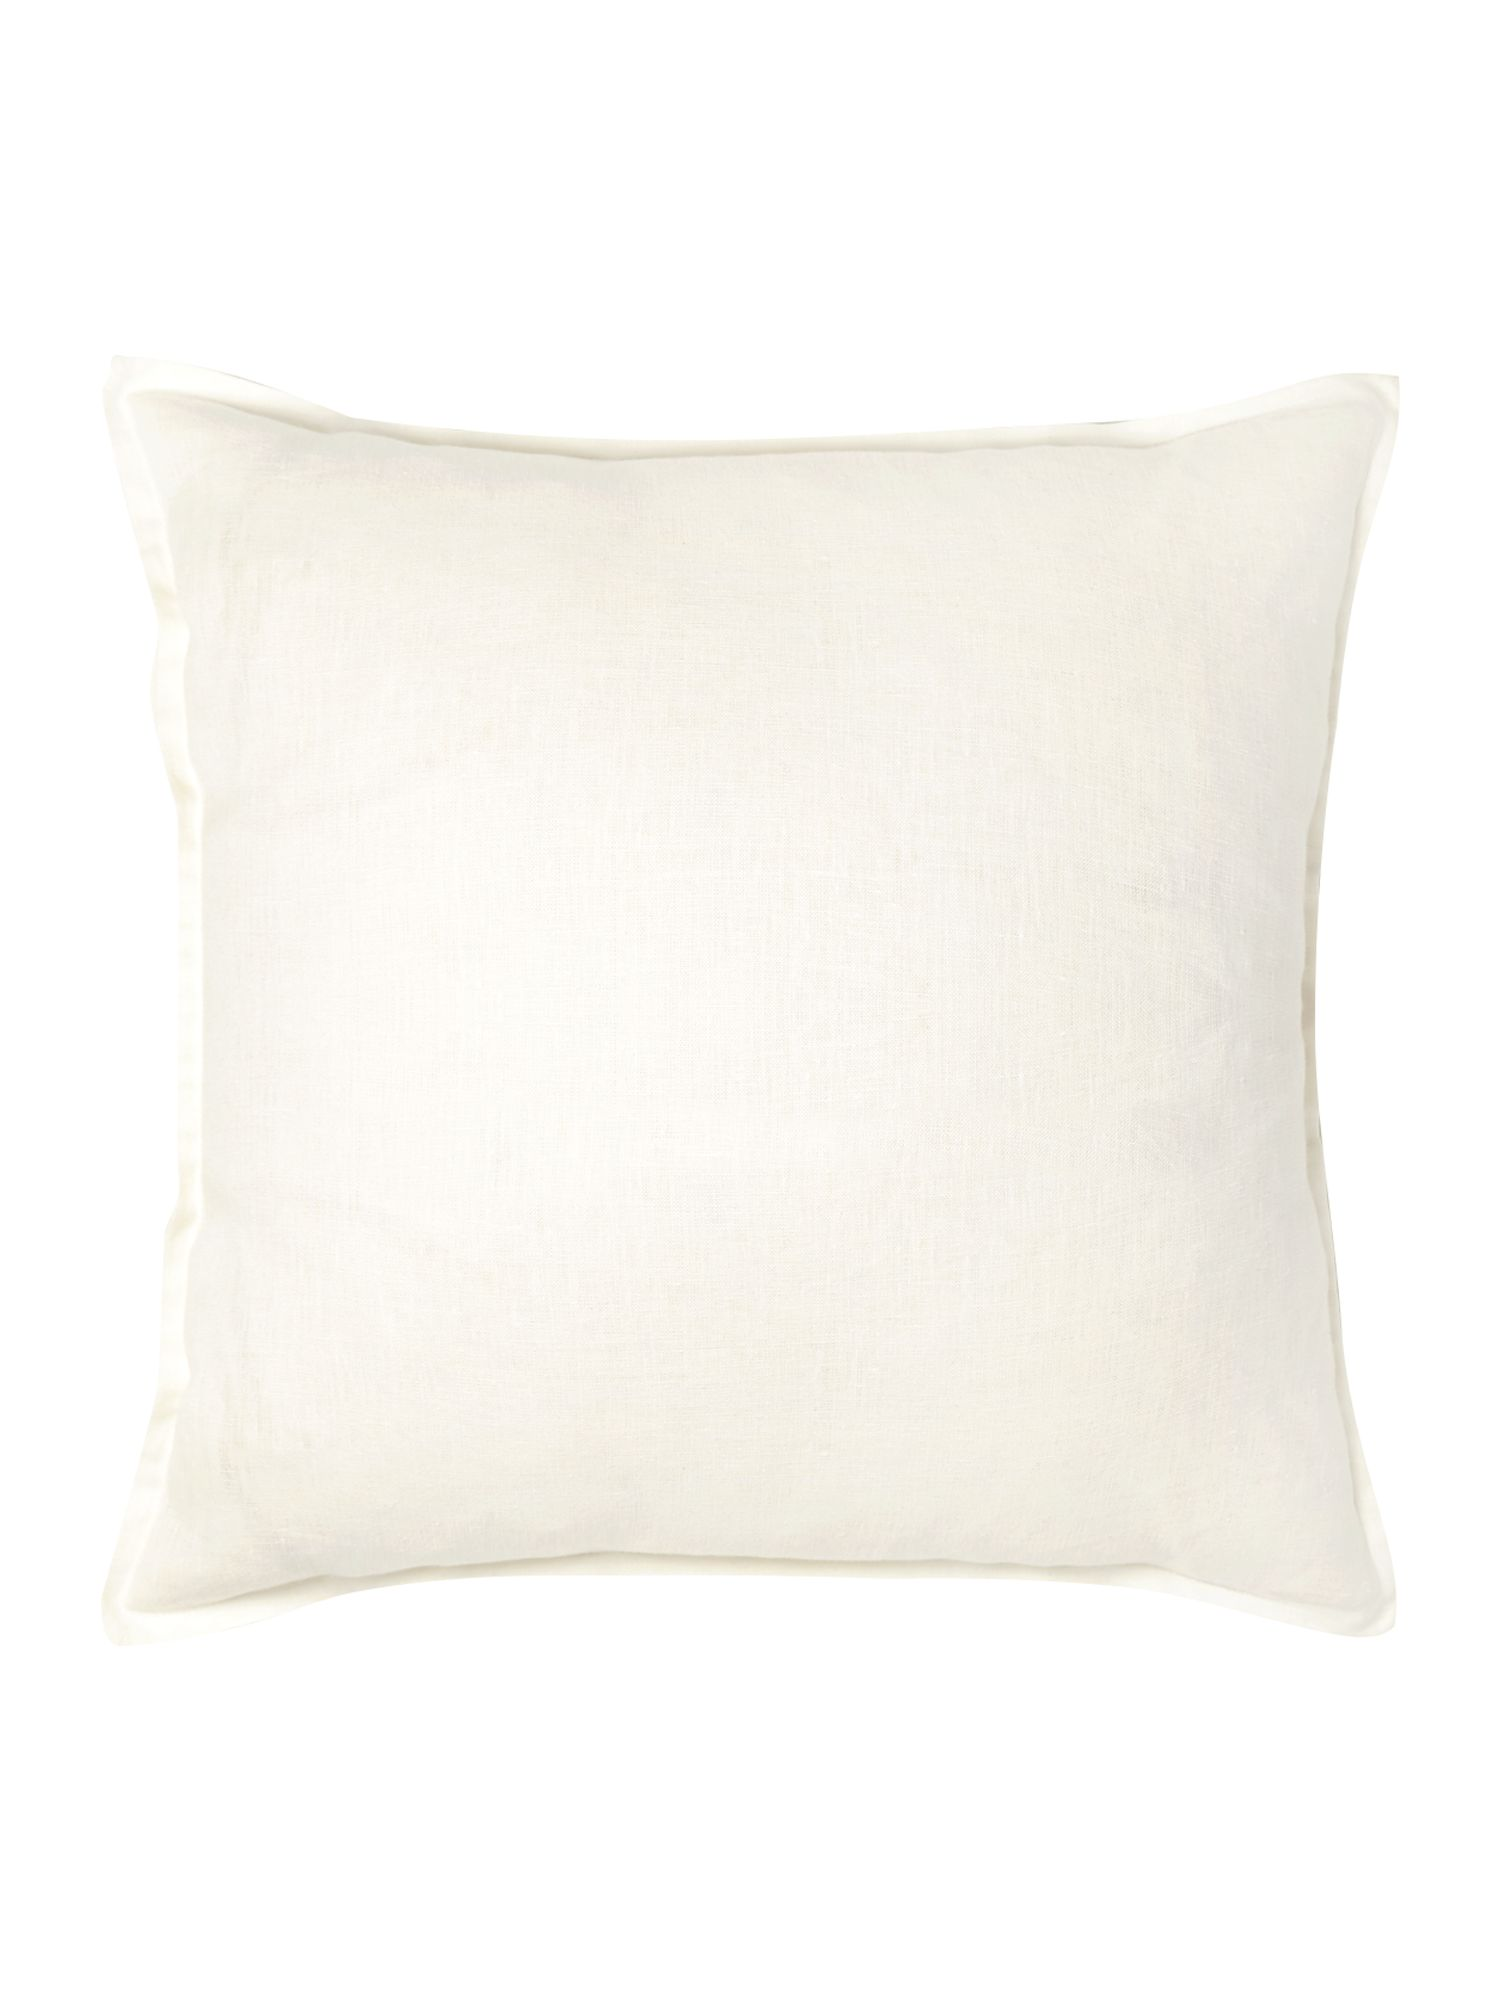 French print linen cushion, white